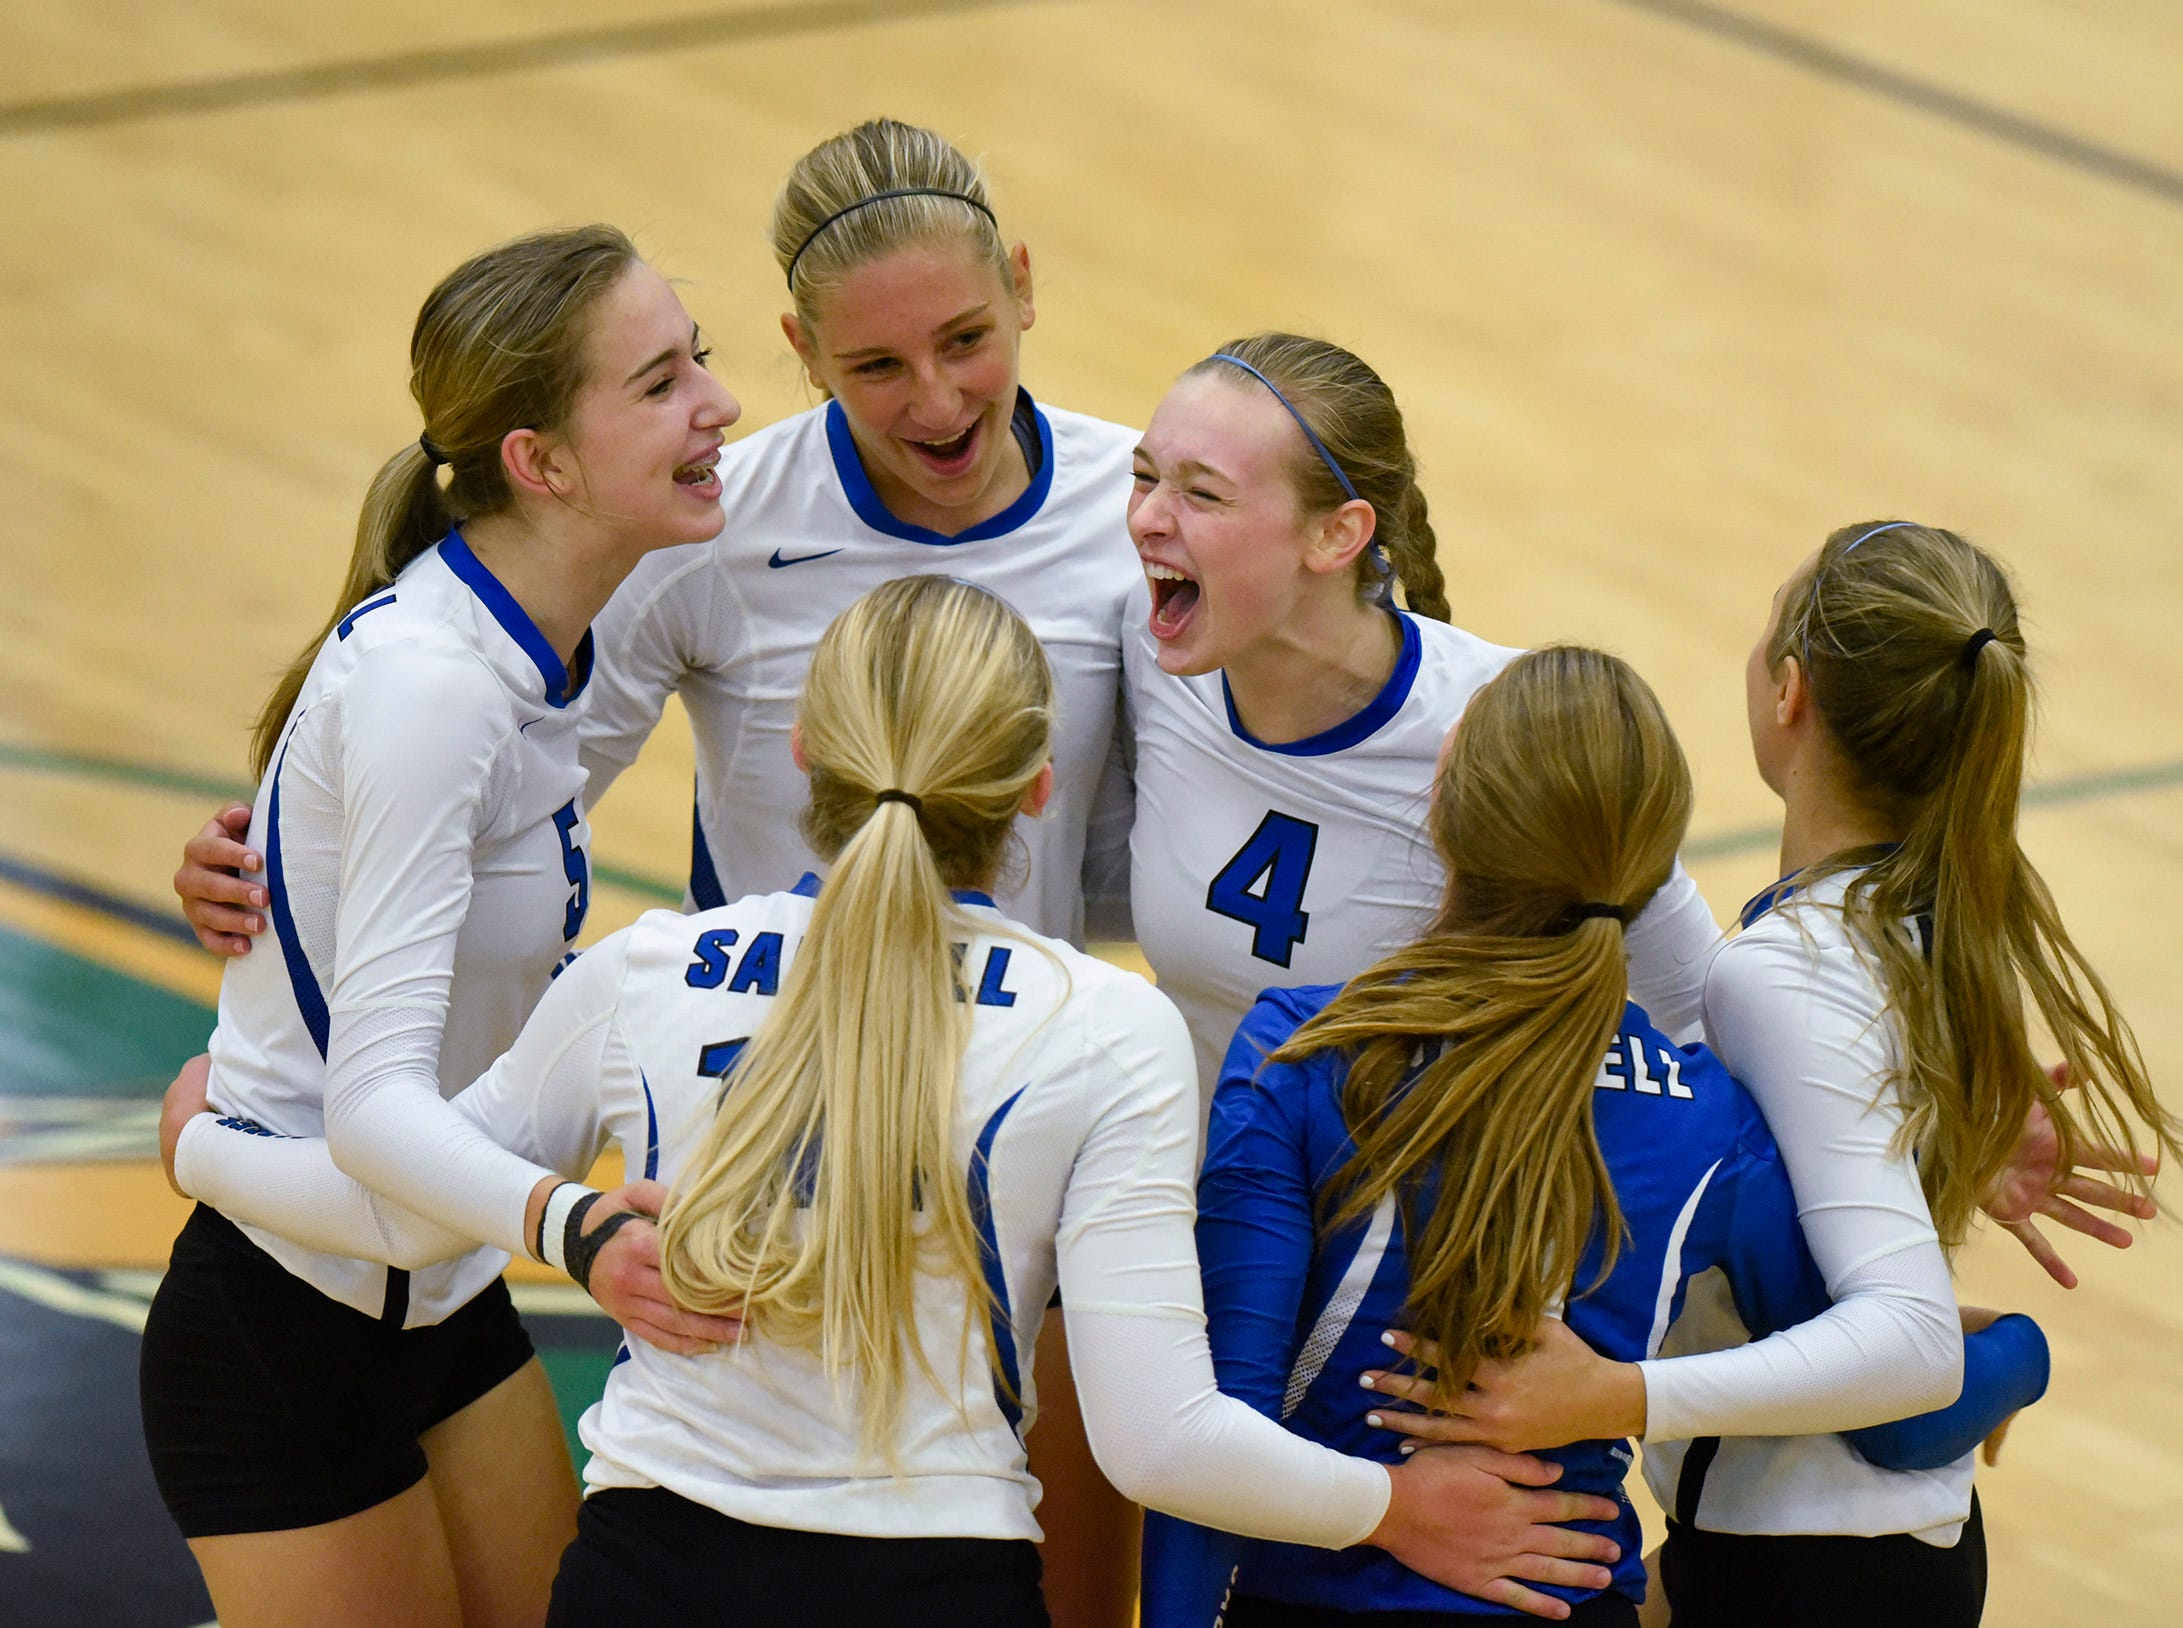 Sartell players celebrate a point against Sauk Rapids during the first game Thursday, Sept. 13, at Sauk Rapids.